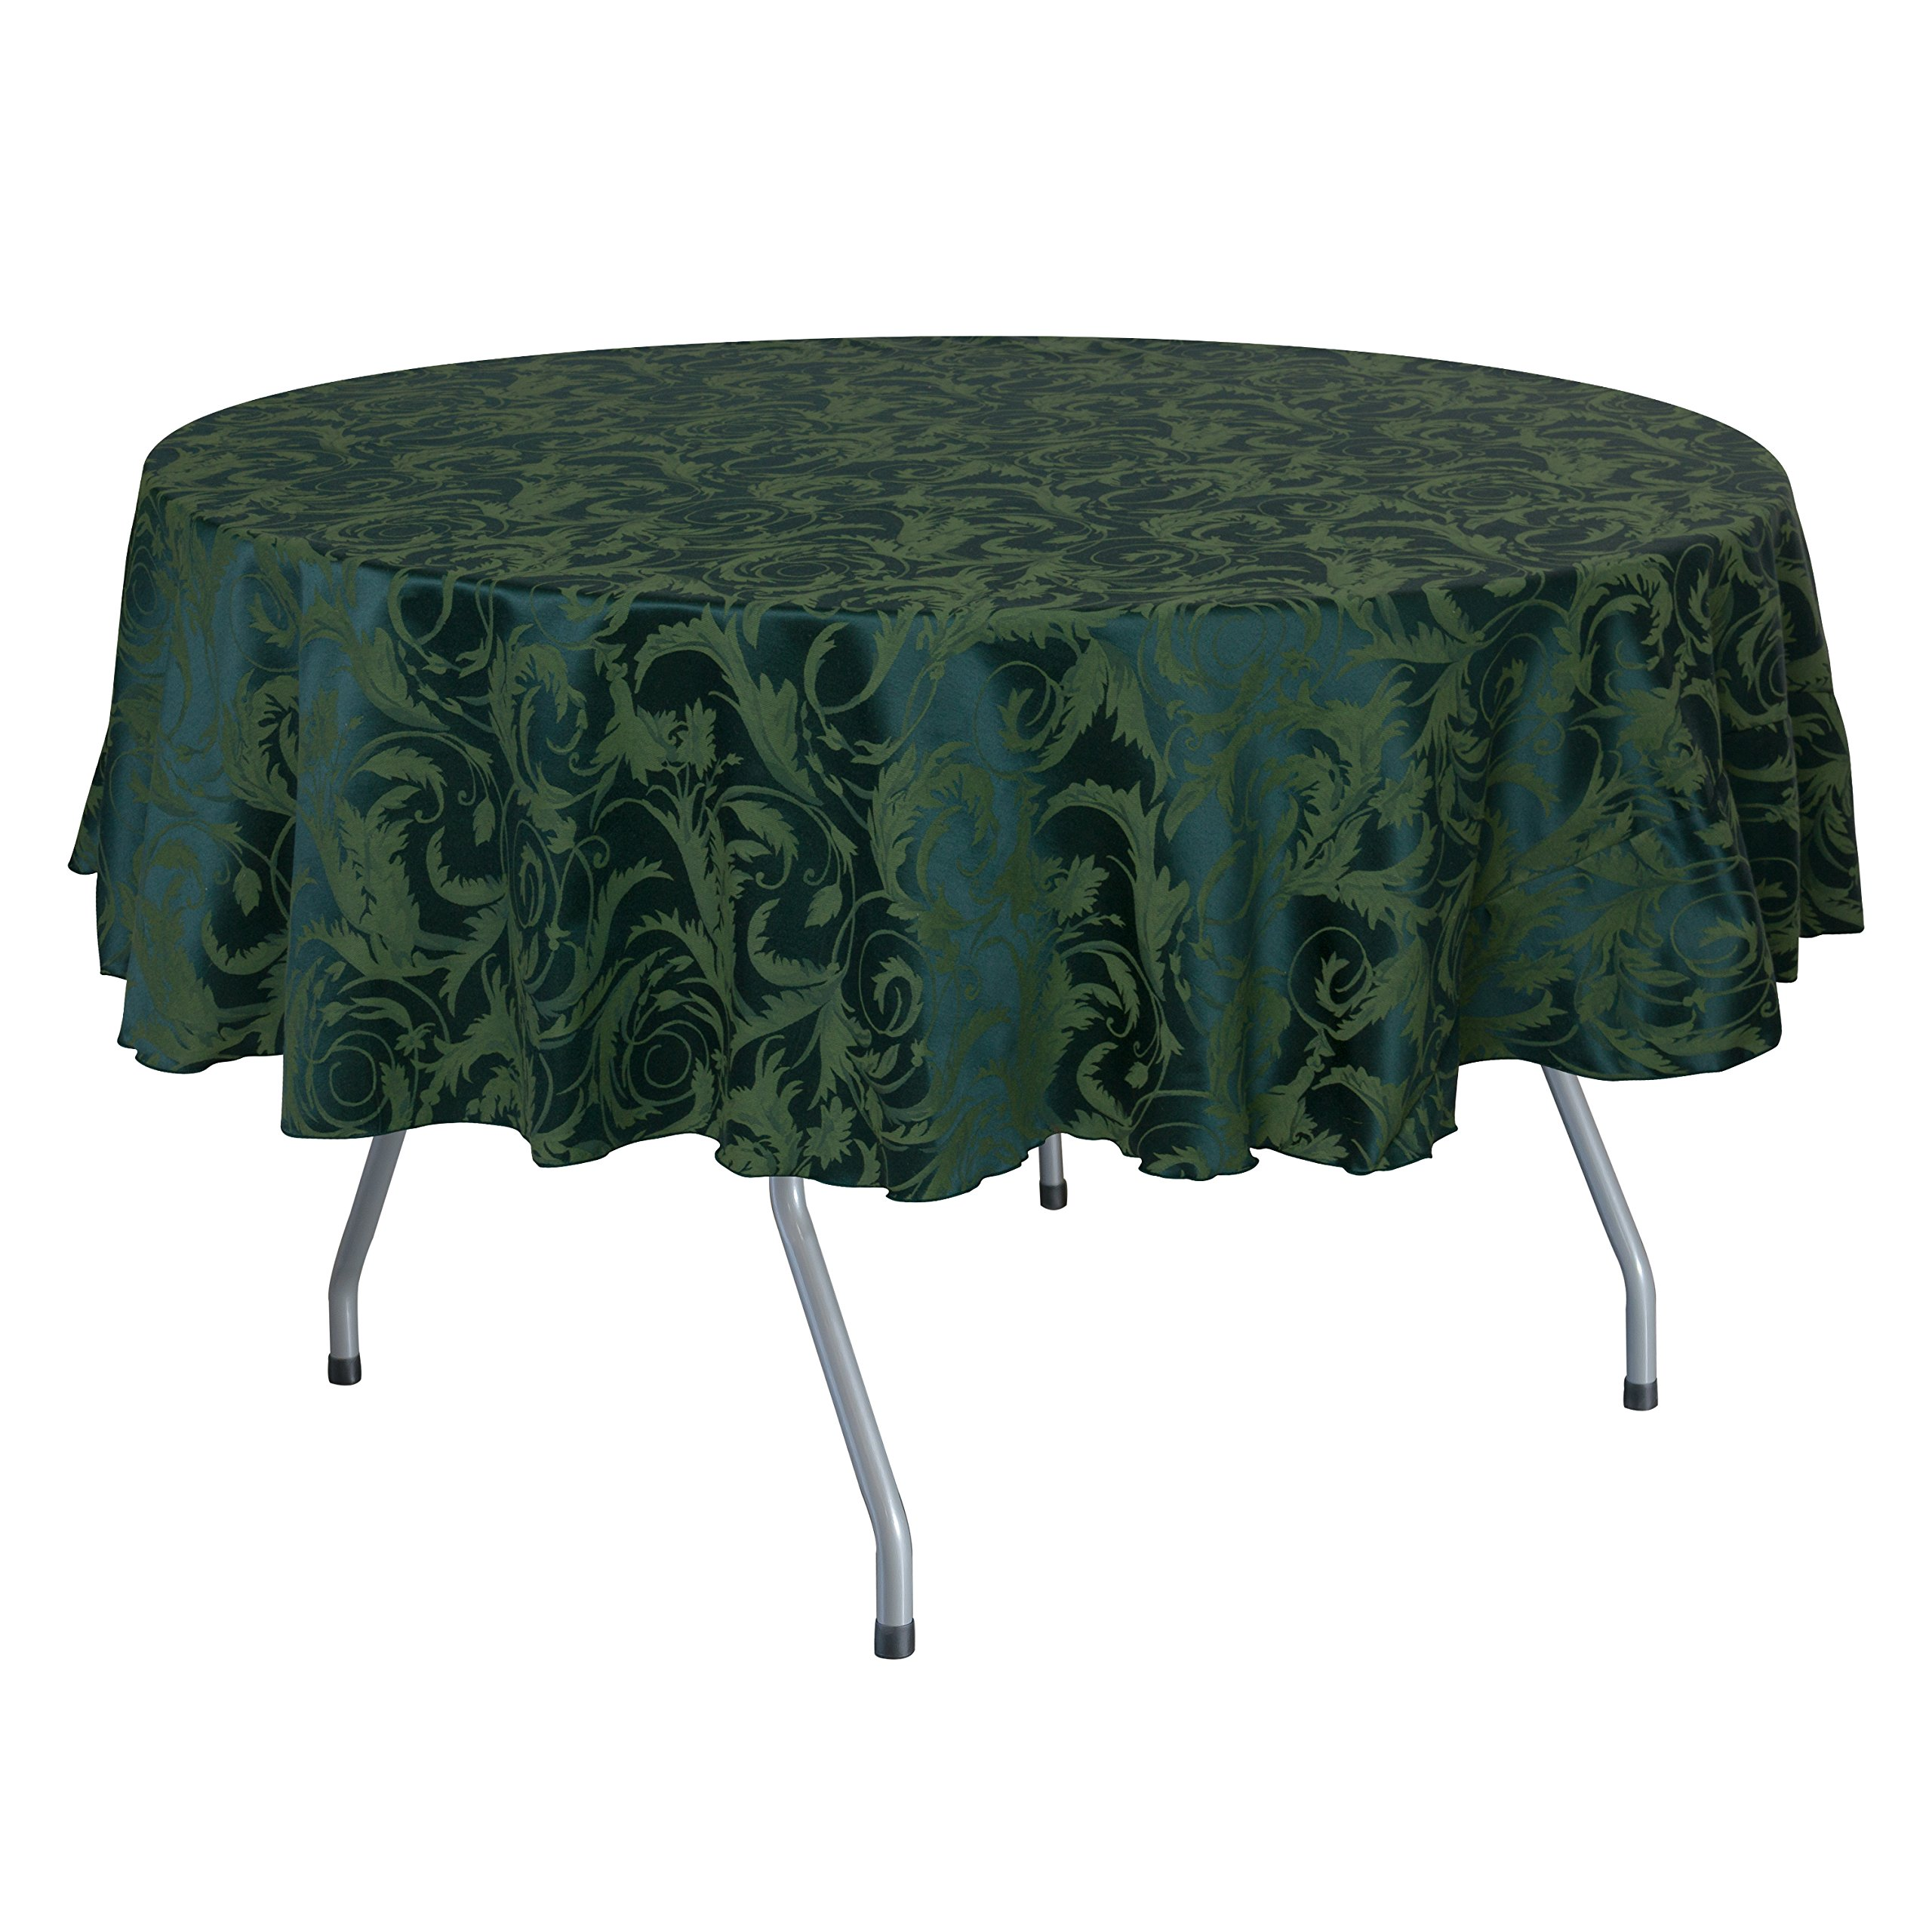 Ultimate Textile (5 Pack) Damask Melrose 60 x 120 Inch Oval Tablecloth - Home Dining Collection - Floral Leaf Scroll Jacquard Design, Hunter Green